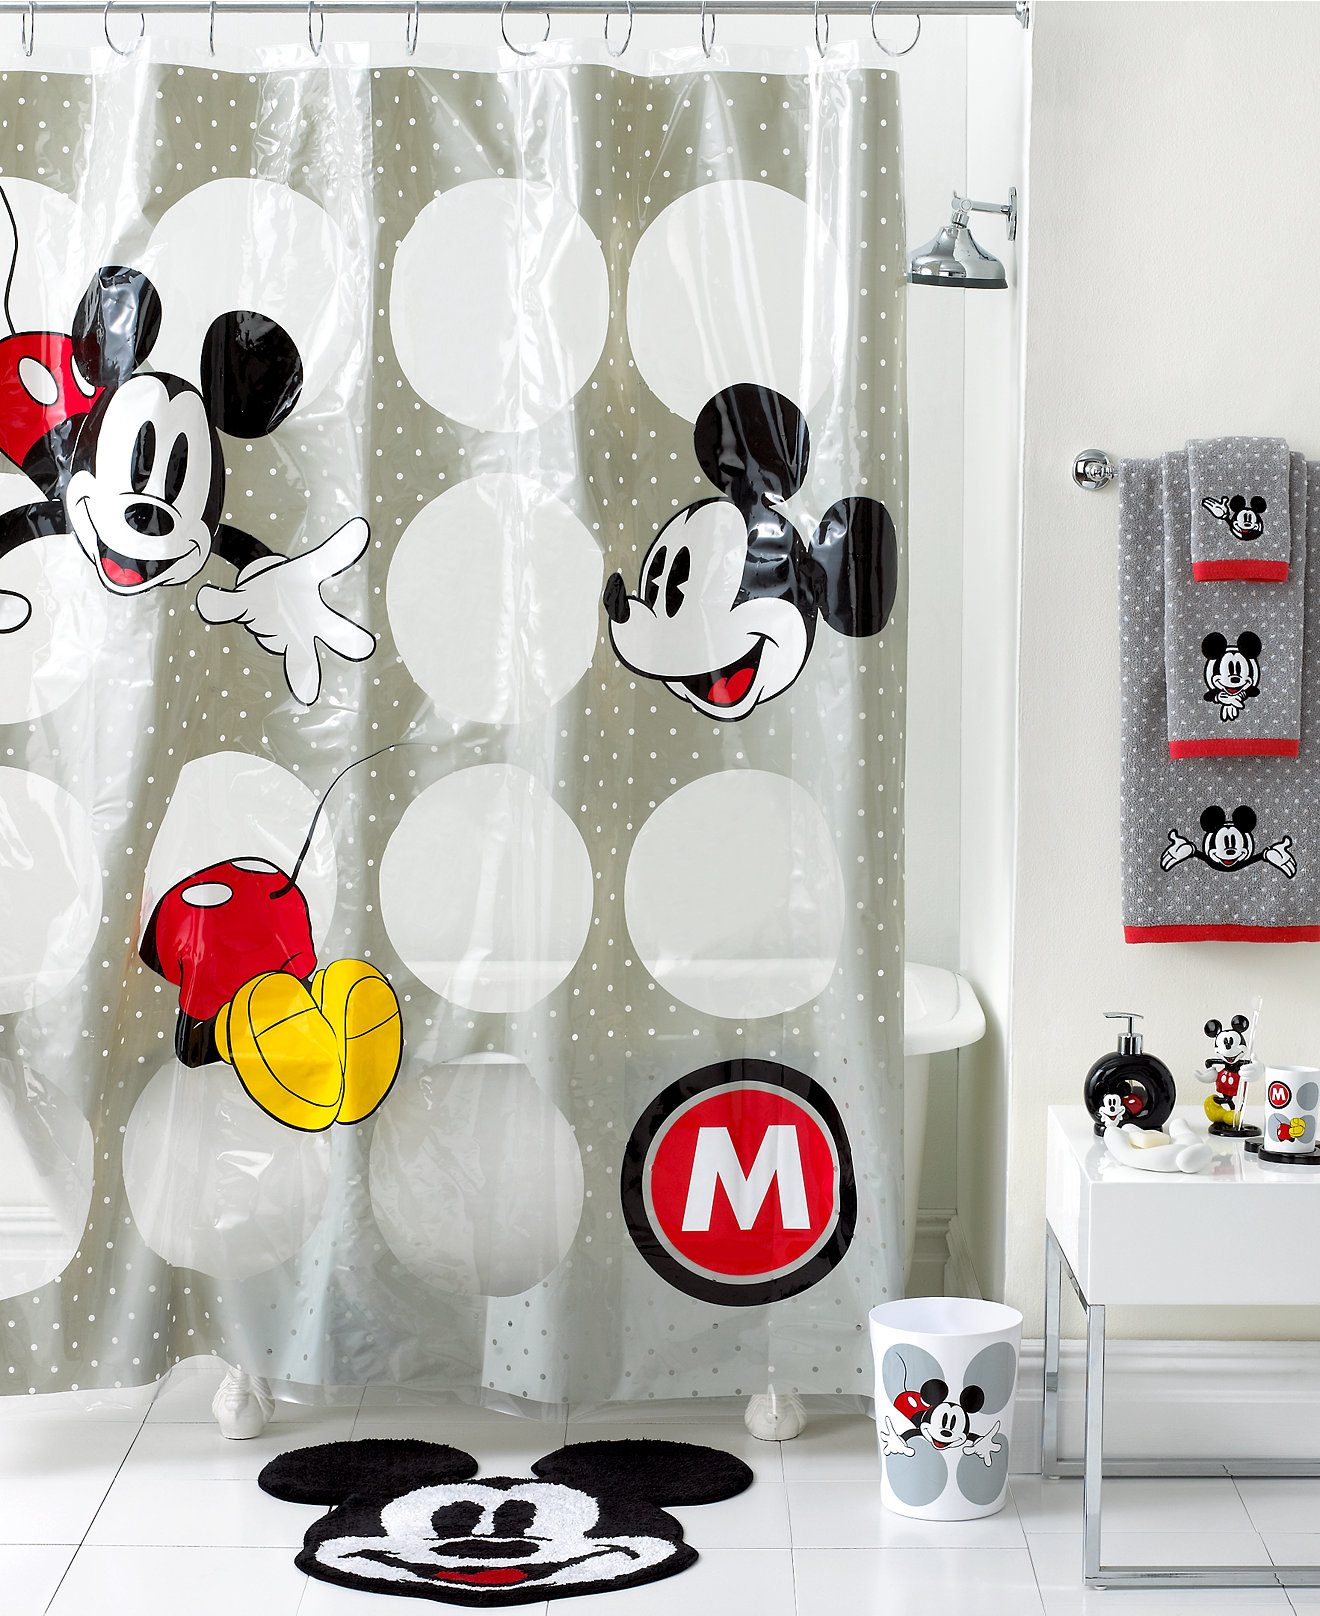 Target bathroom accessories shower curtains - Bathroom Rug Pcs Mat Sets Bathroom Sets Shower Curtain Rugs Bathroom Set Decorating Ideas Decorating